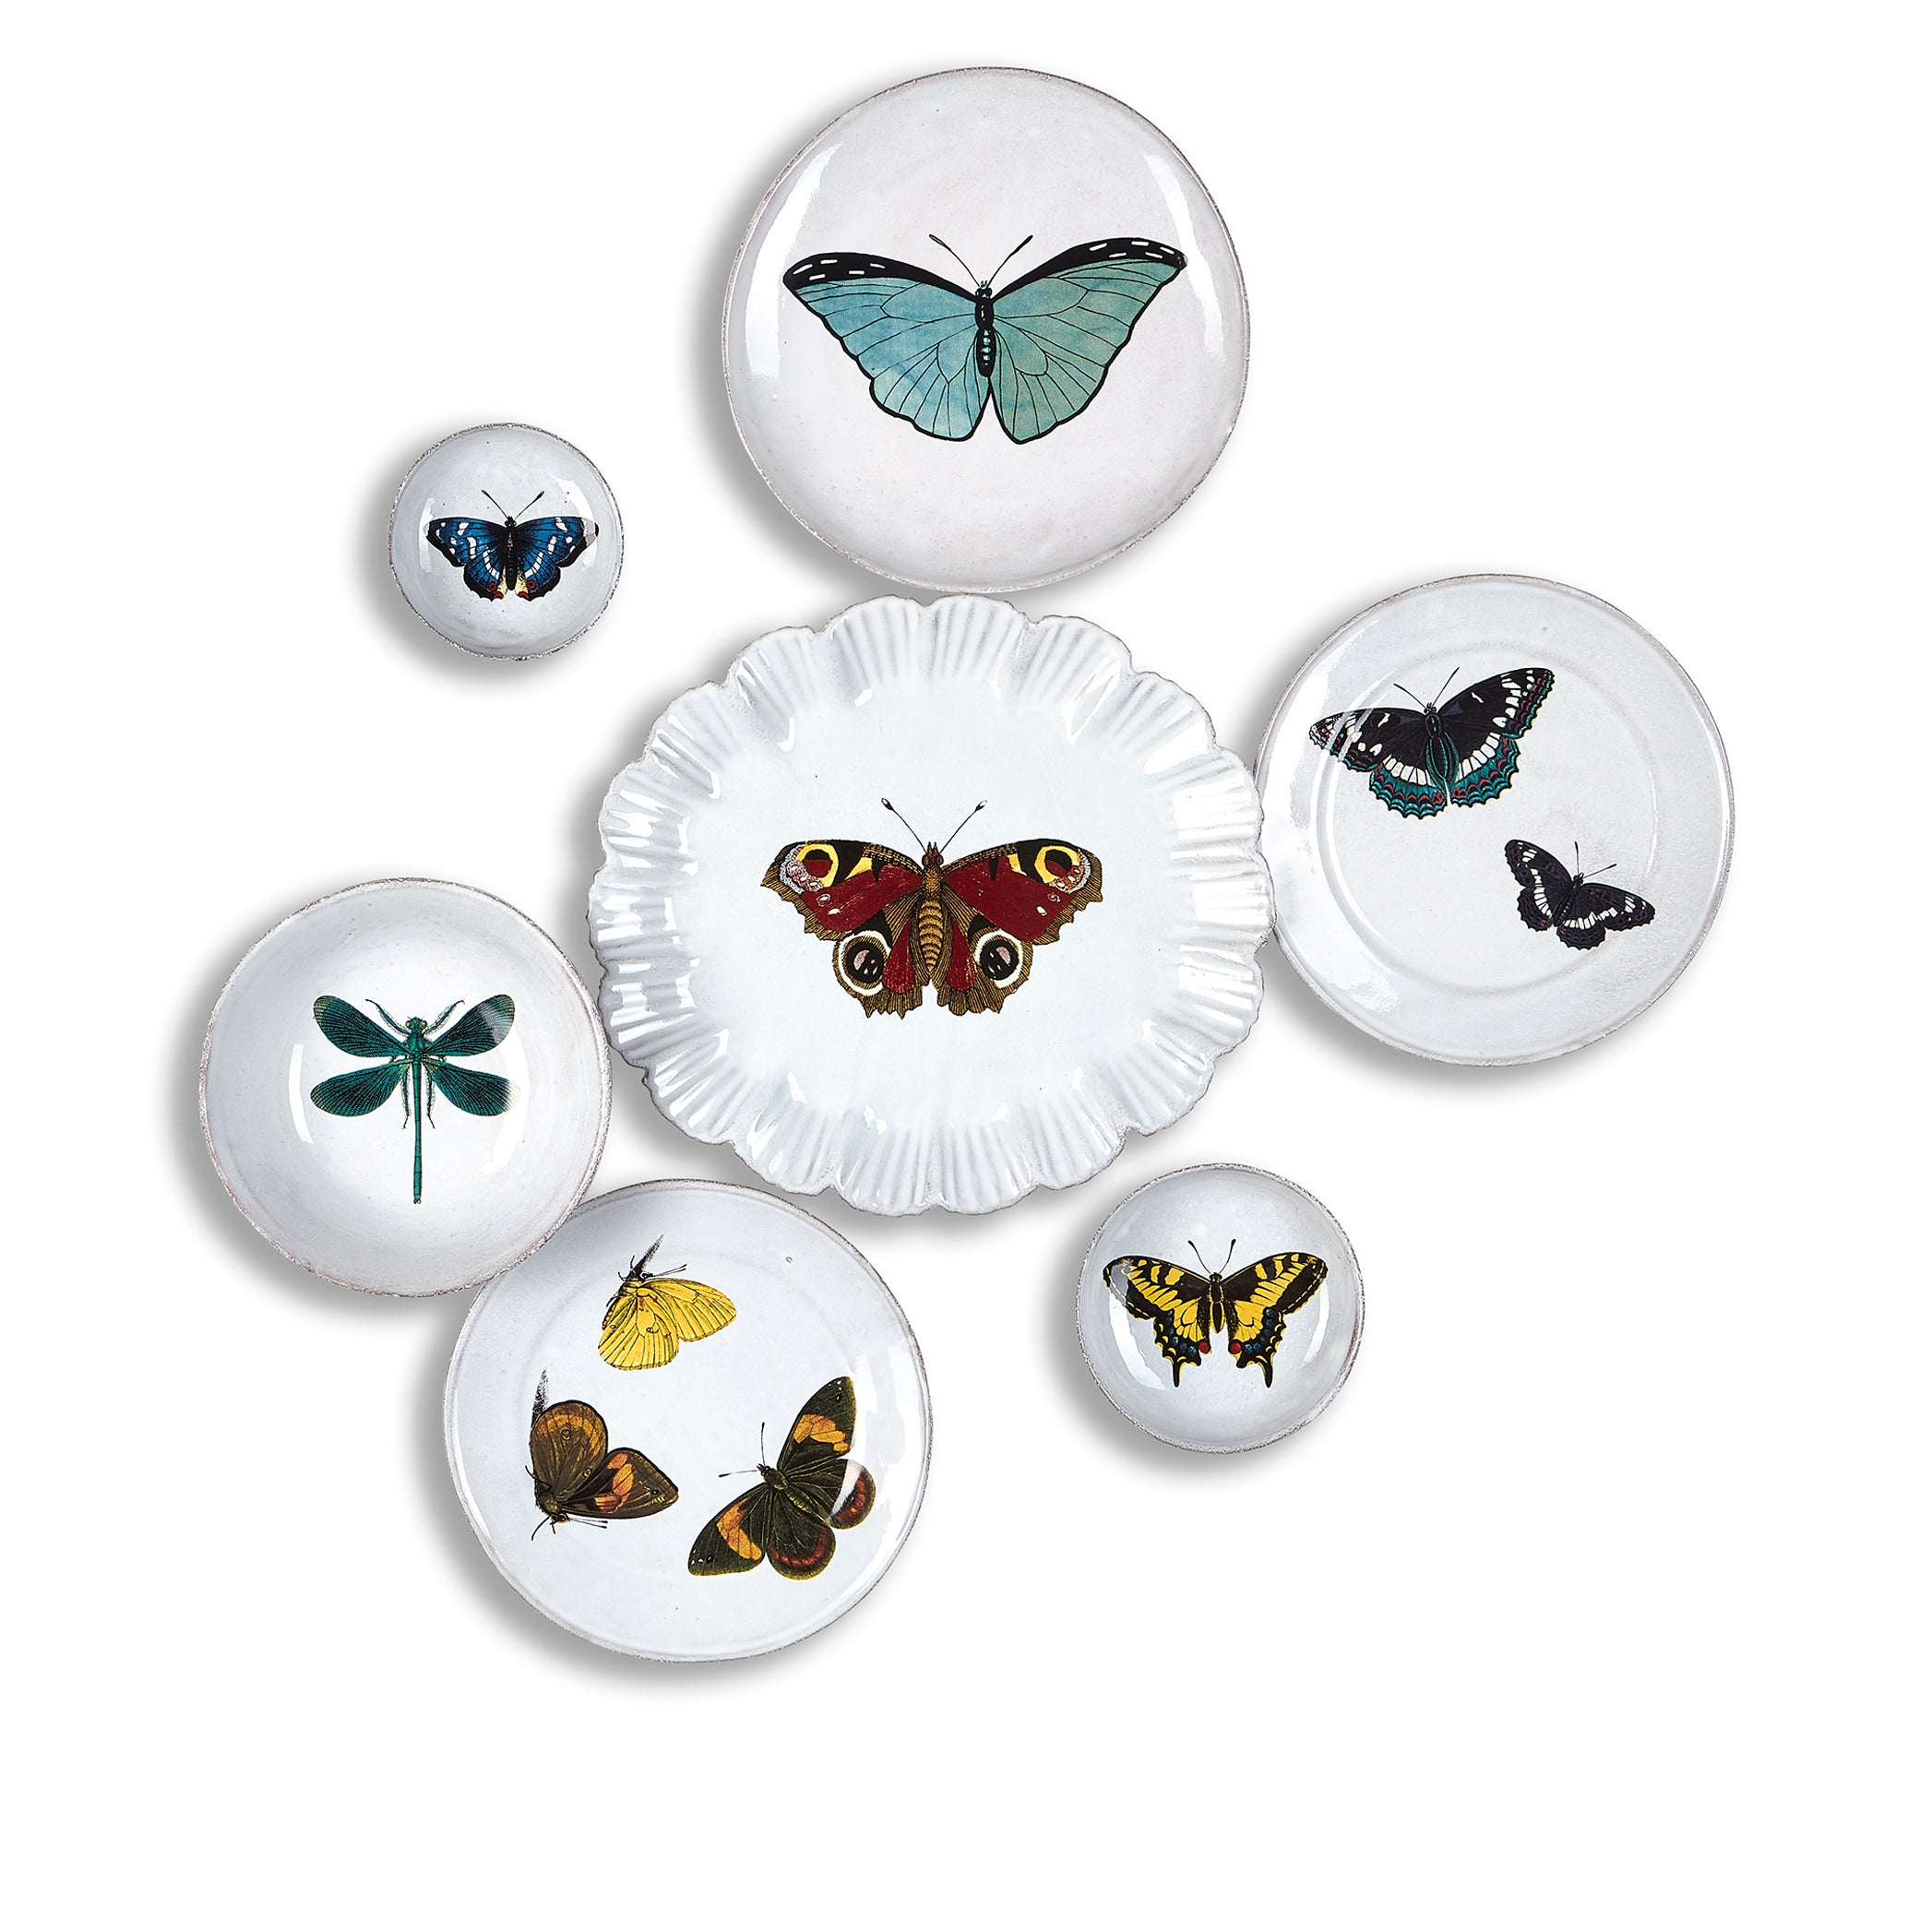 Blue Butterfly Small Dish by Astier de Villatte